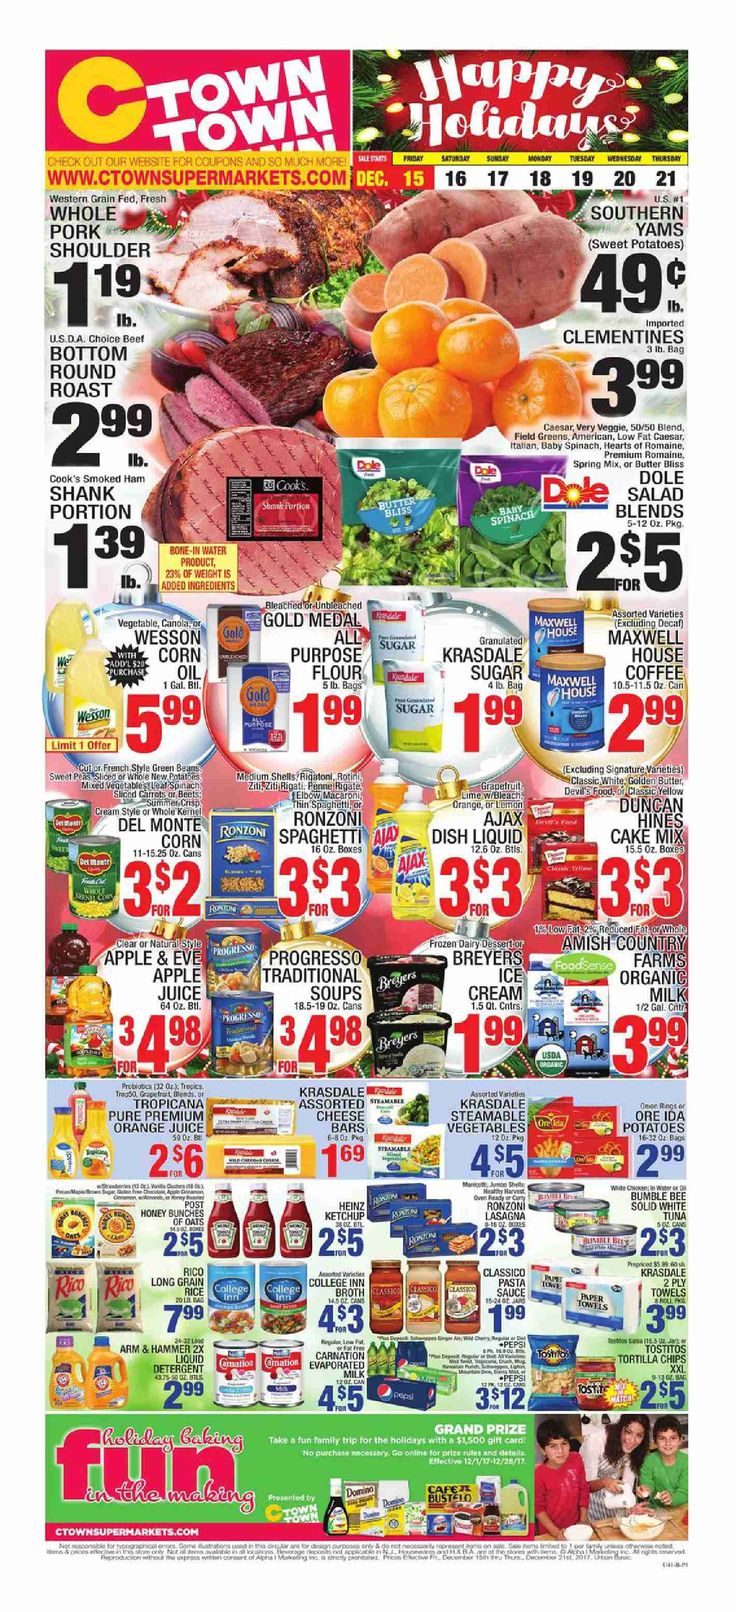 Ctown Weekly Circular Flyer December 15 – 21, 2017 – Ctown, Grocery weekly ad comes on the scene almost each week but quite often people the Ctown, Grocery ad and perhaps they are quick to throw it out. Checking the ads each and every week and clipping your coupons that can come inside the weekly circular ad can sometimes be an exceptionally rewarding experience. Ctown, Grocery regularly includes coupons which will equate his almost as much as 50% off your purchas